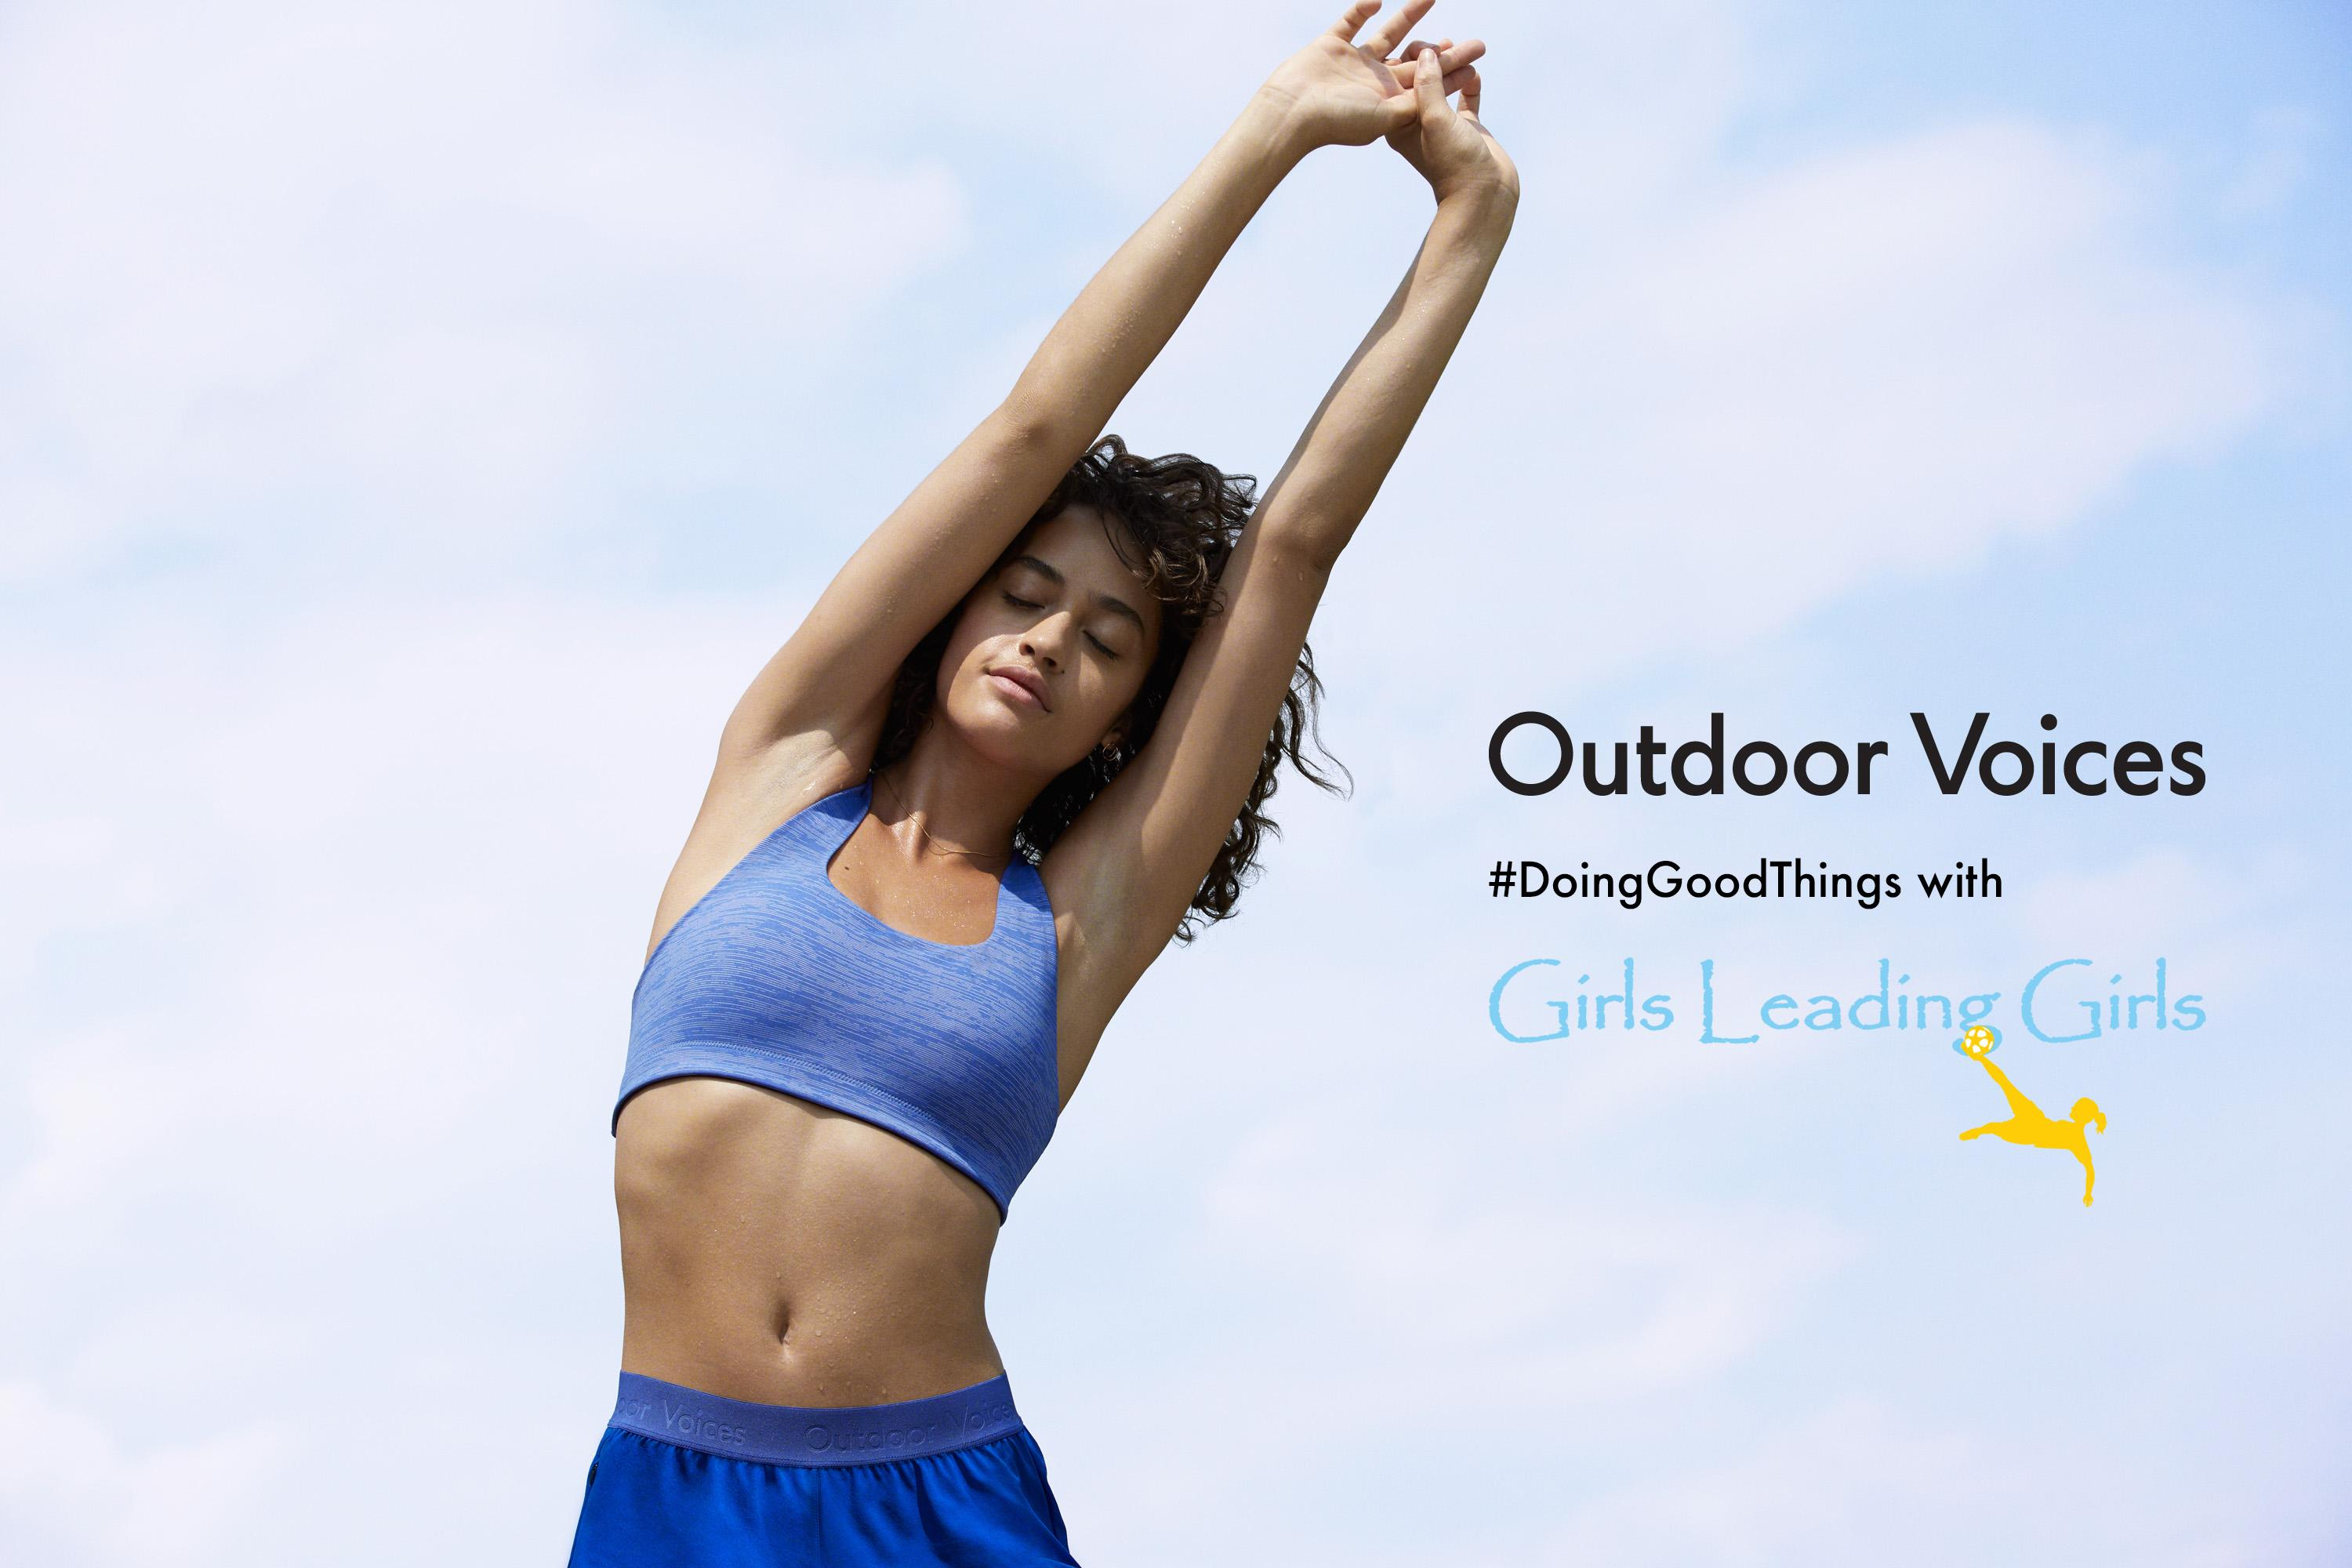 Shopping Event at Outdoor Voices Benefiting Girls Leading Girls